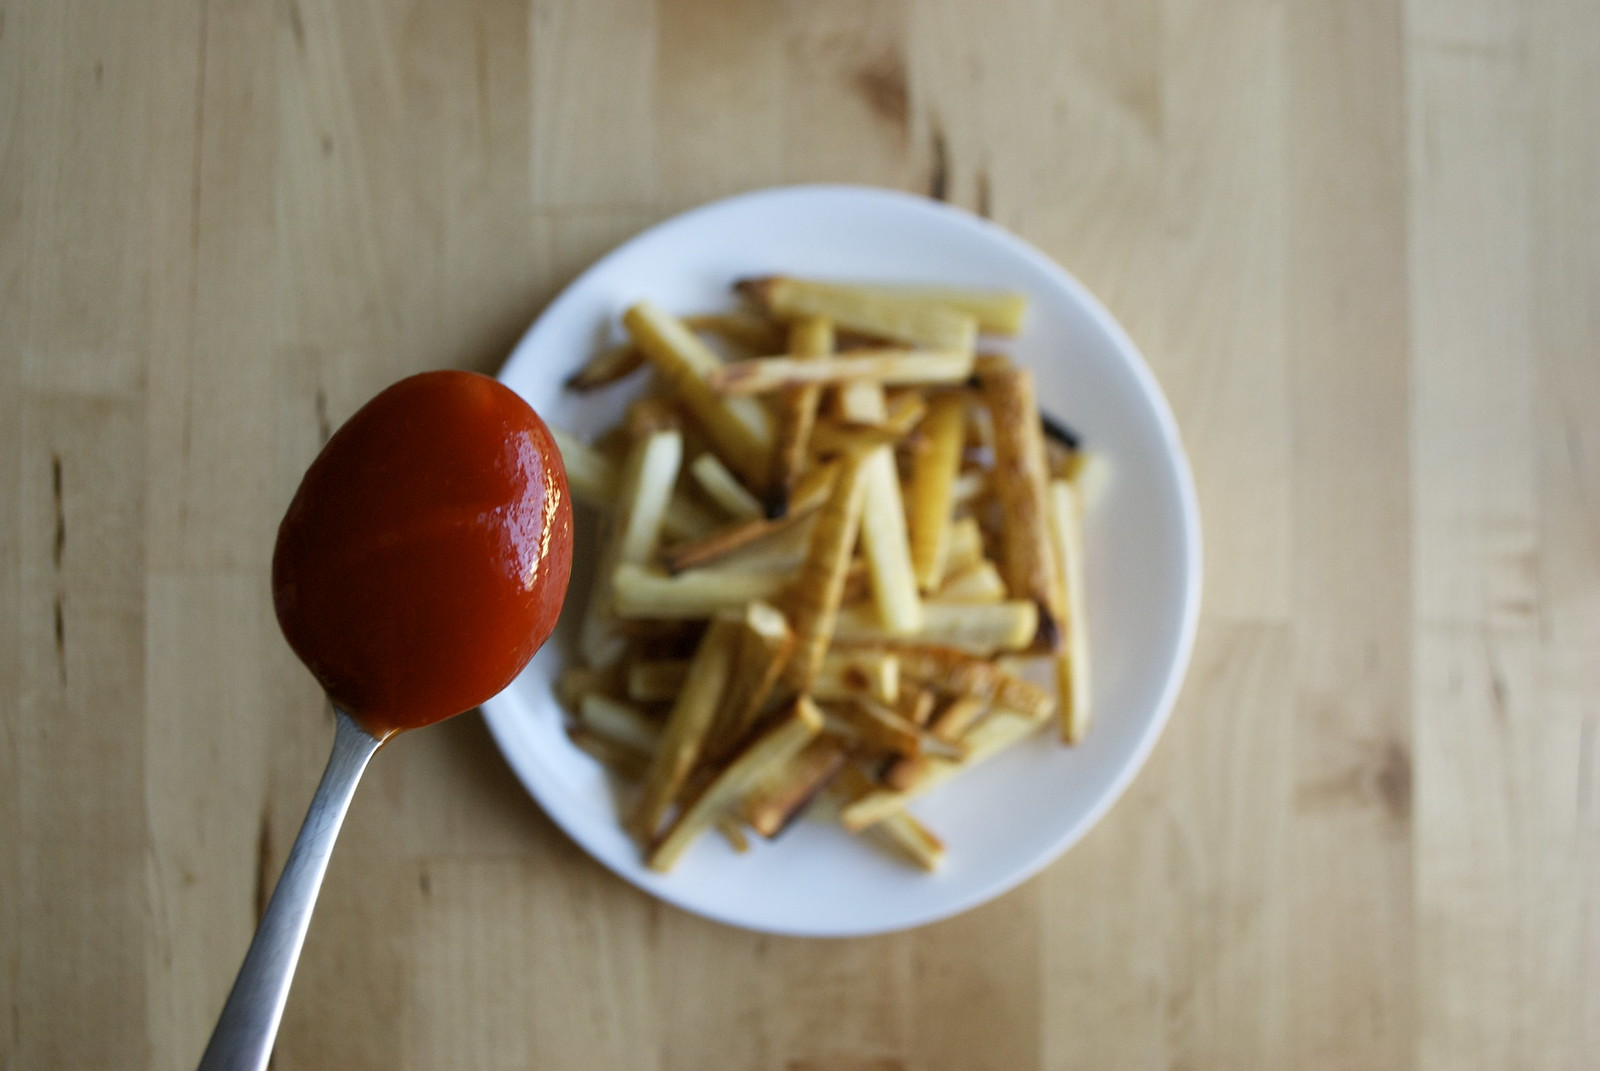 parsnip fries and sriracha-spiked ketchup